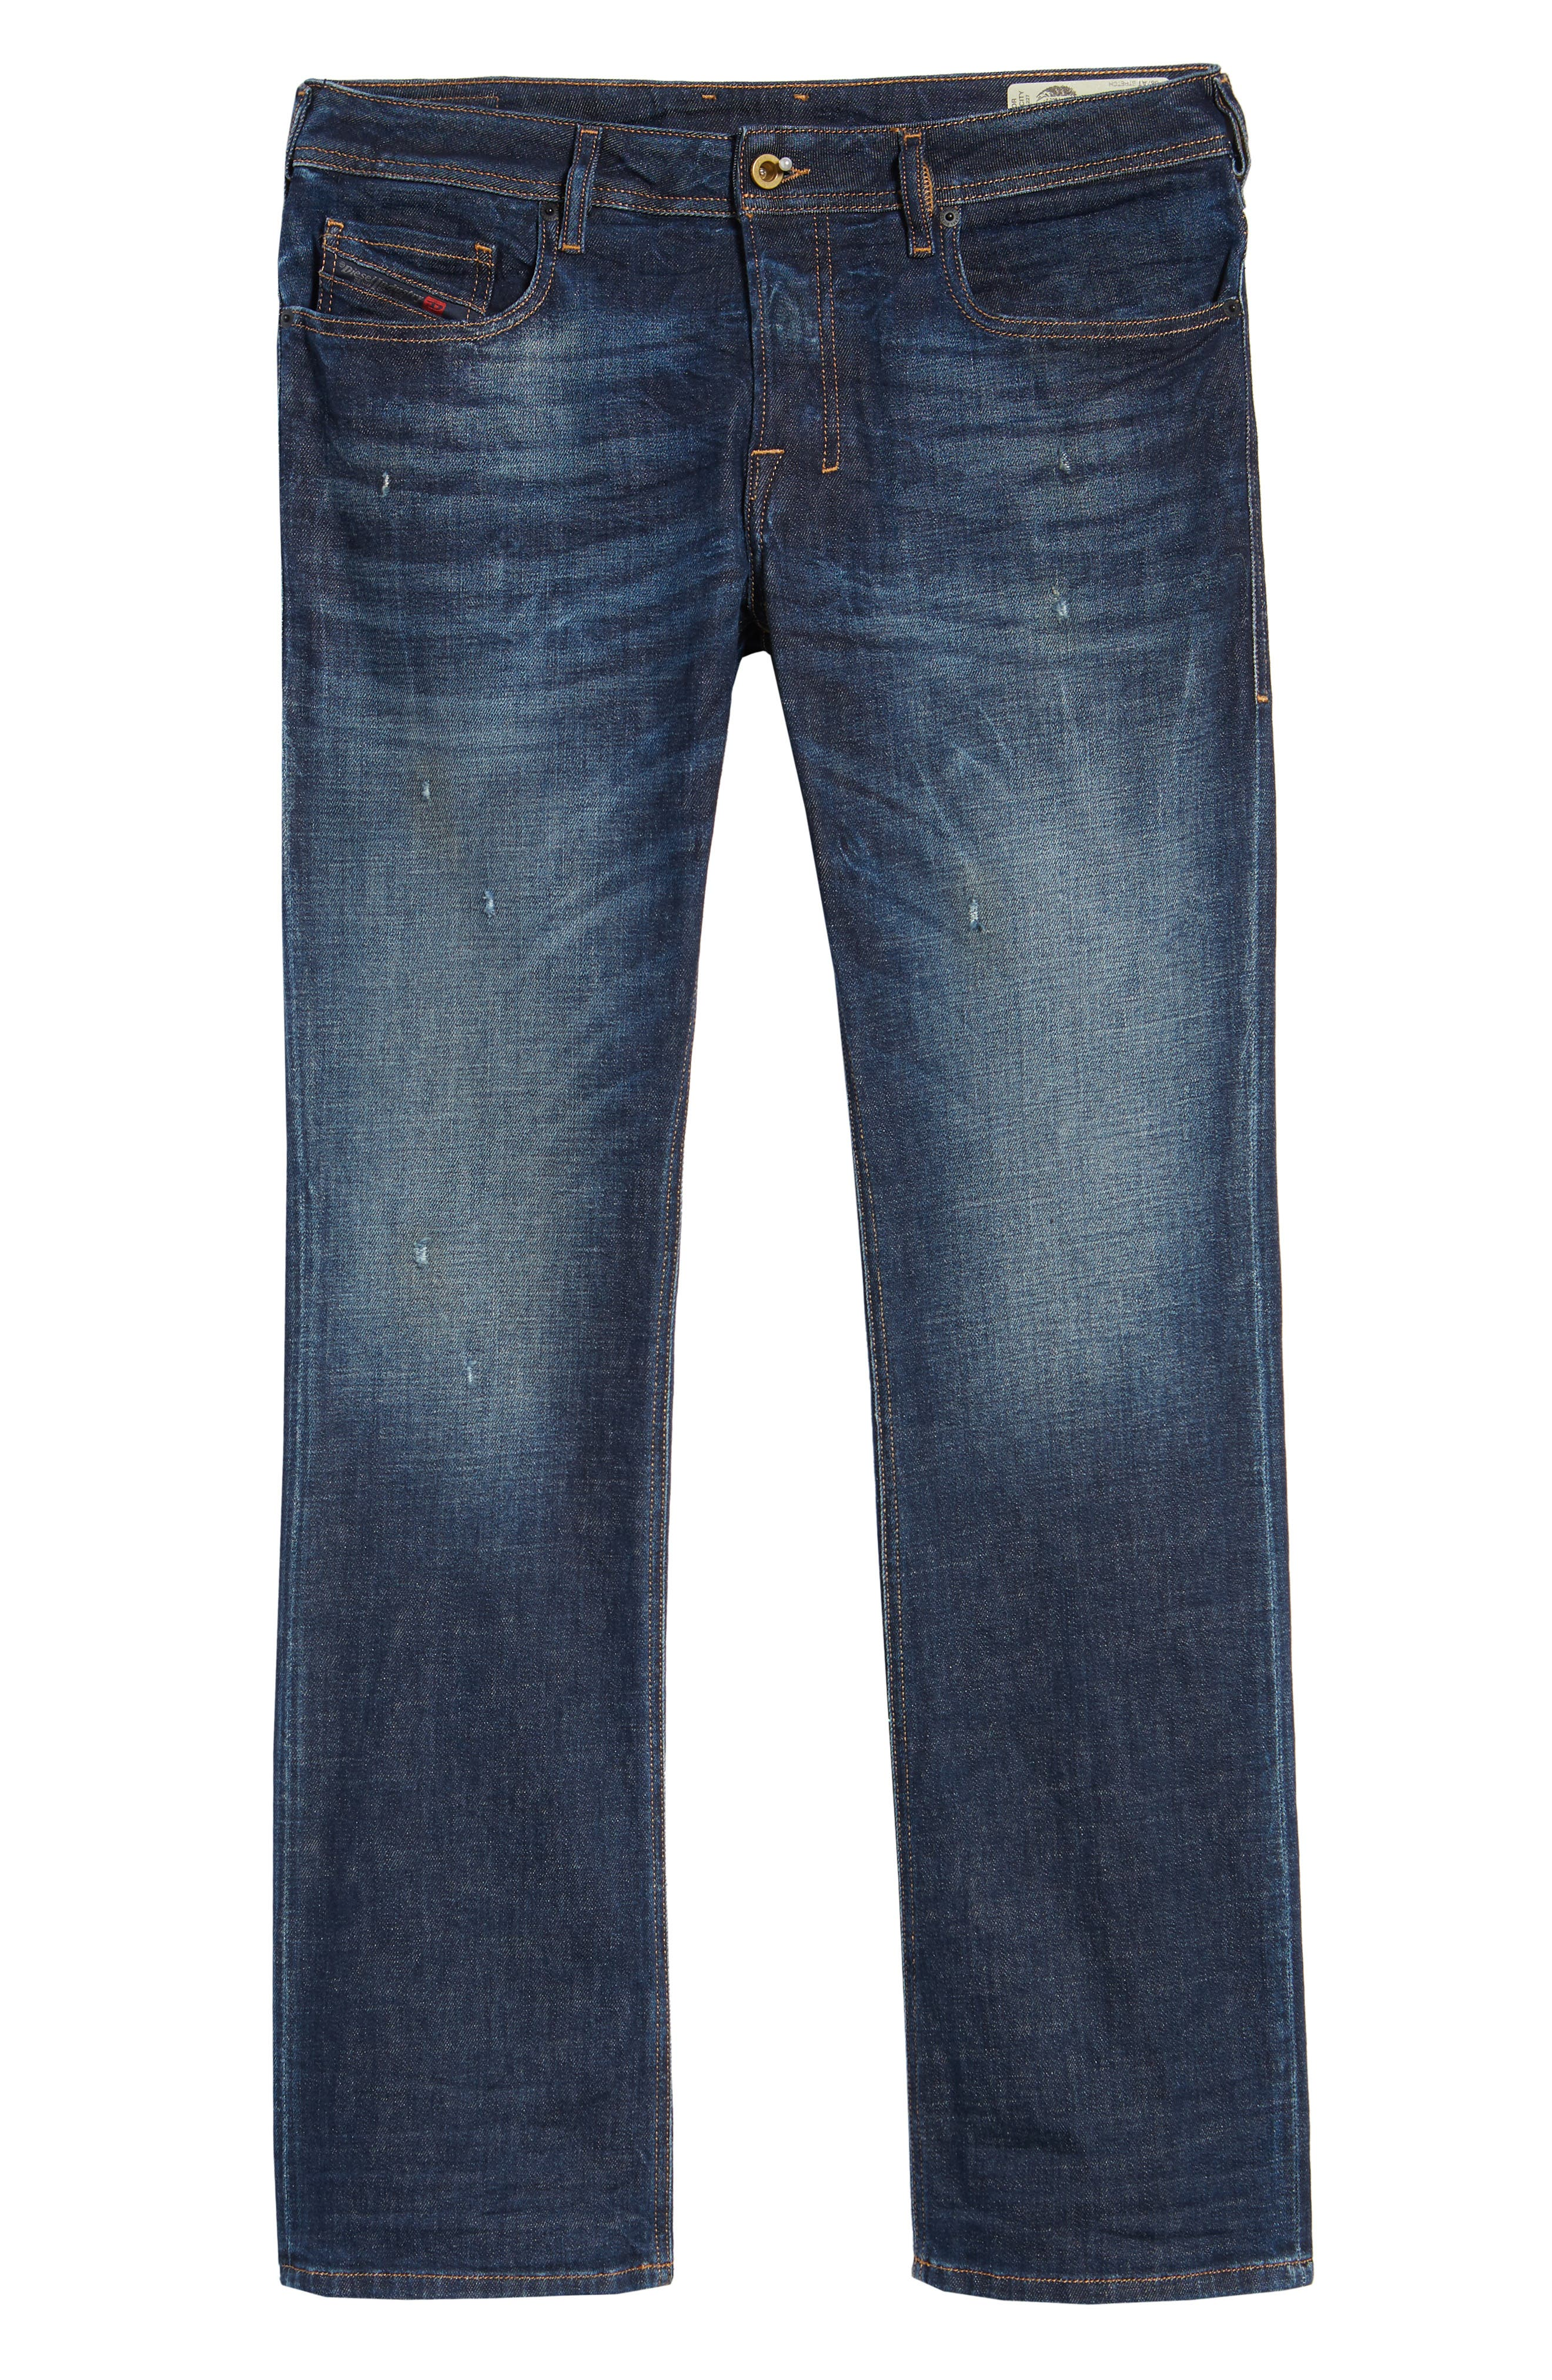 Zatiny Bootcut Jeans,                             Alternate thumbnail 6, color,                             087AT